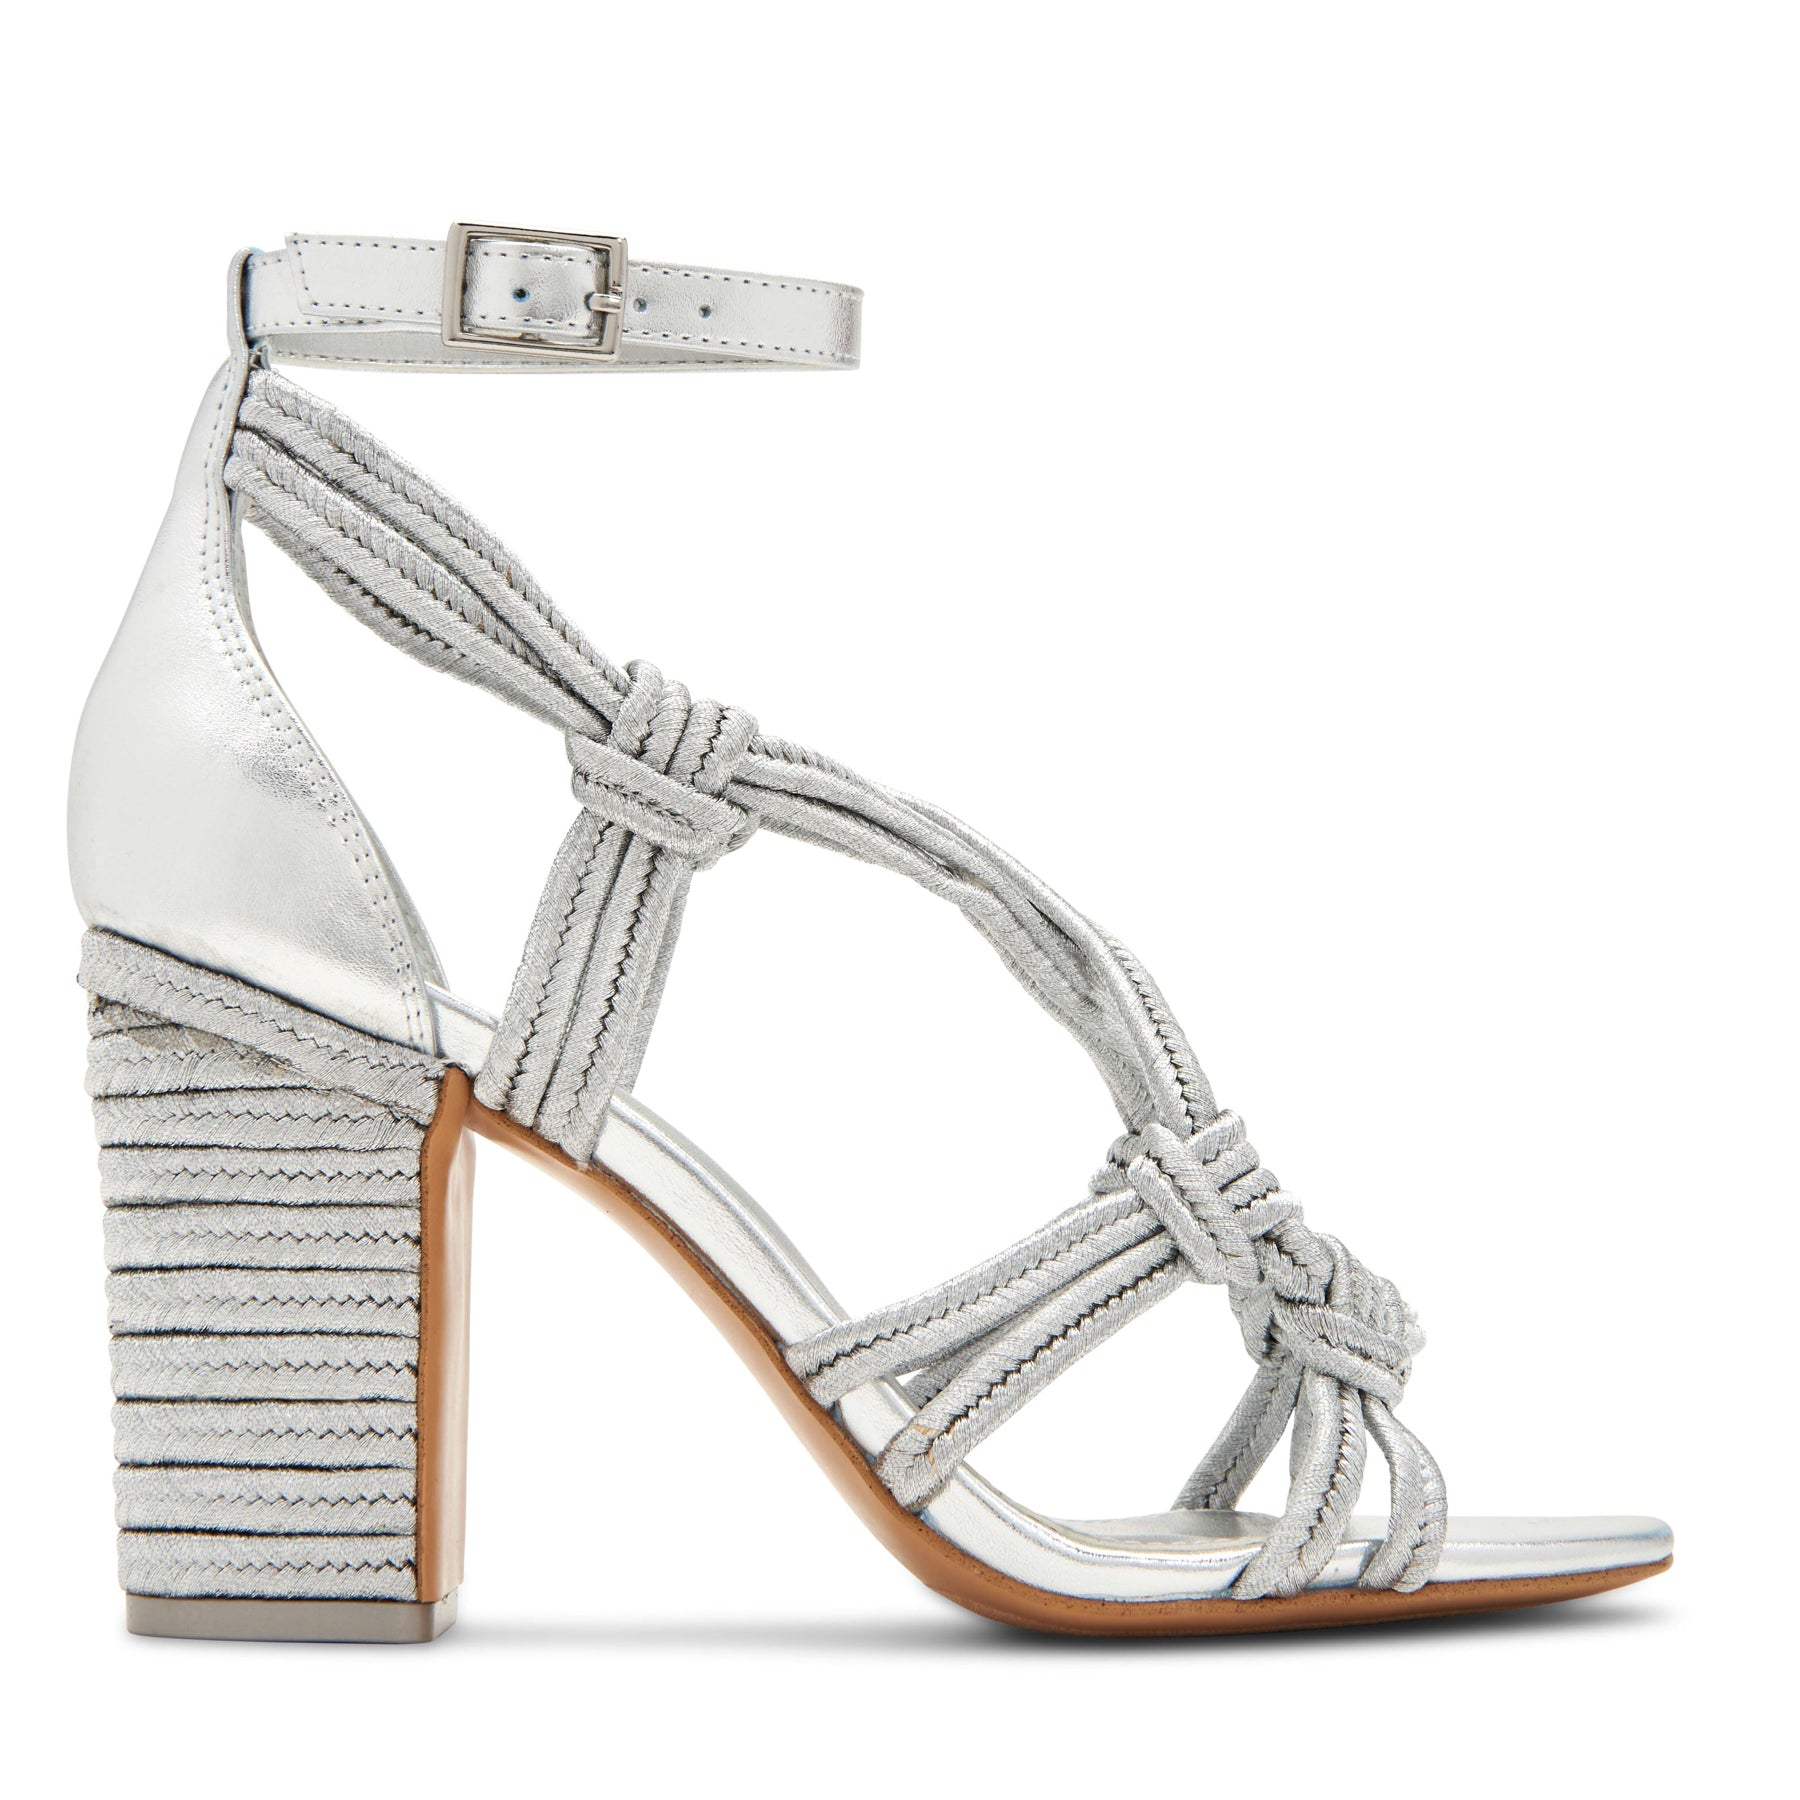 katy perry heeled sandal metallic in silver size 10   the roped